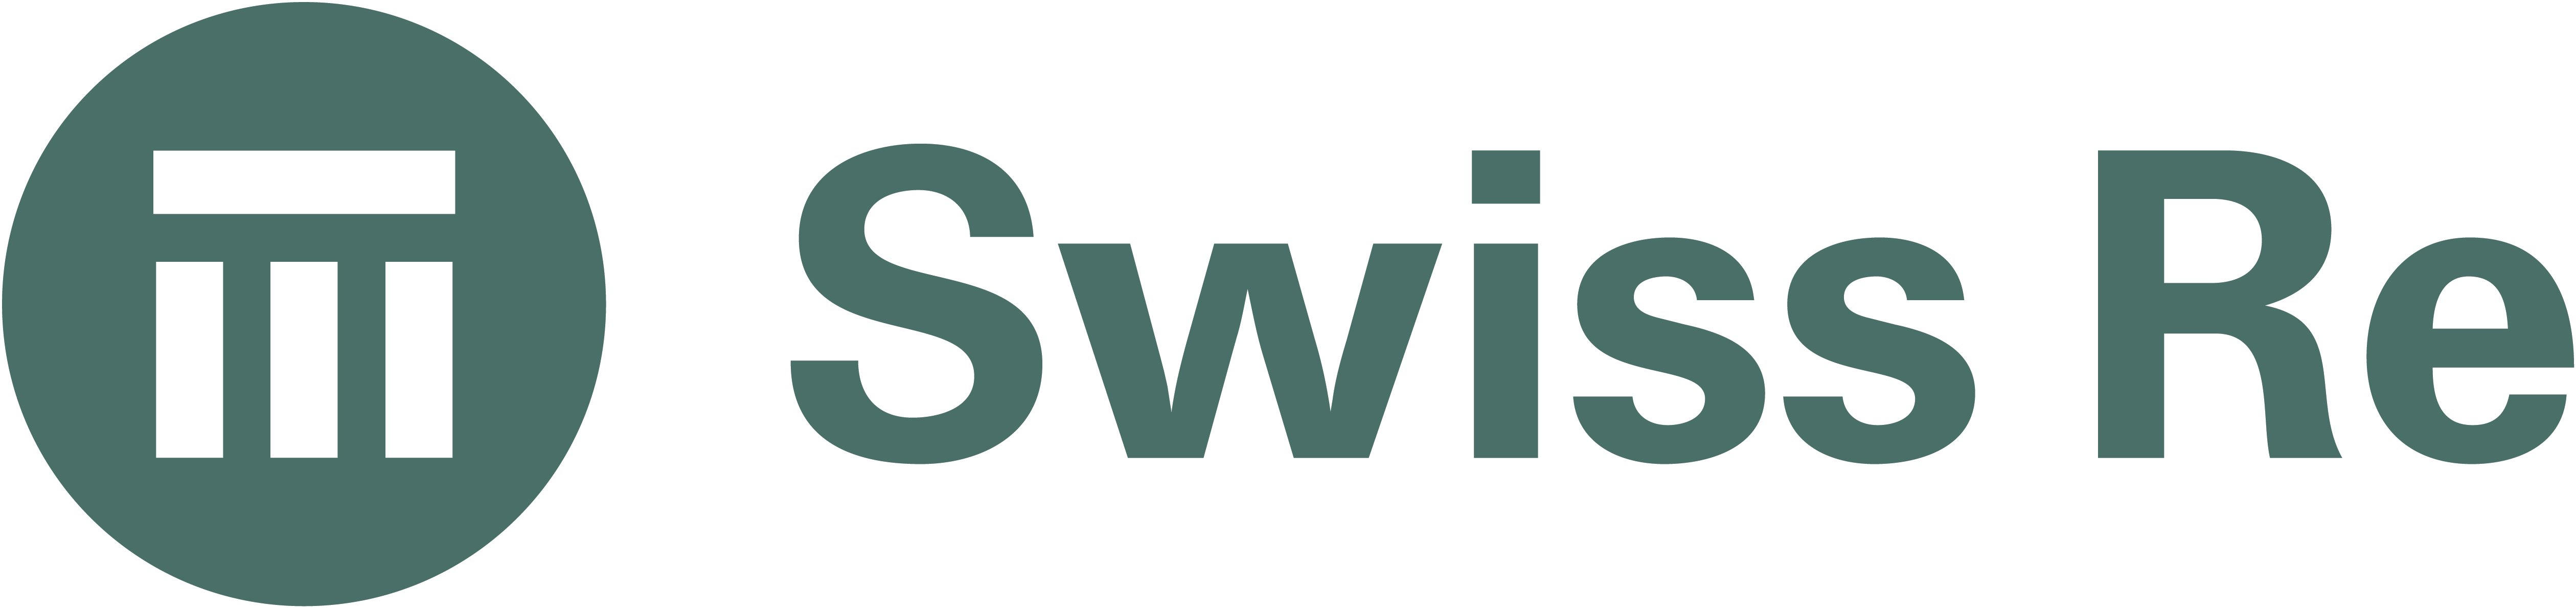 Image result for swiss re logo""